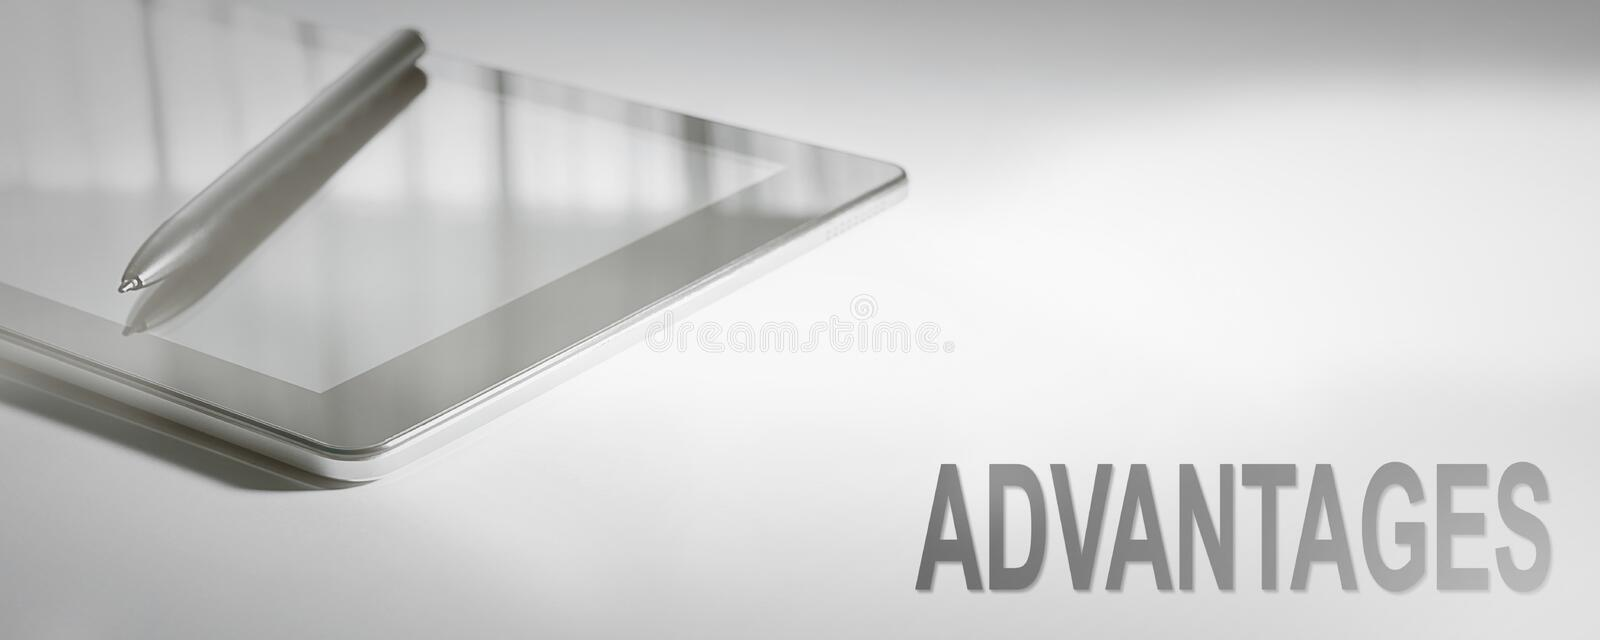 ADVANTAGES Business Concept Digital Technology. Graphic Concept royalty free stock photography